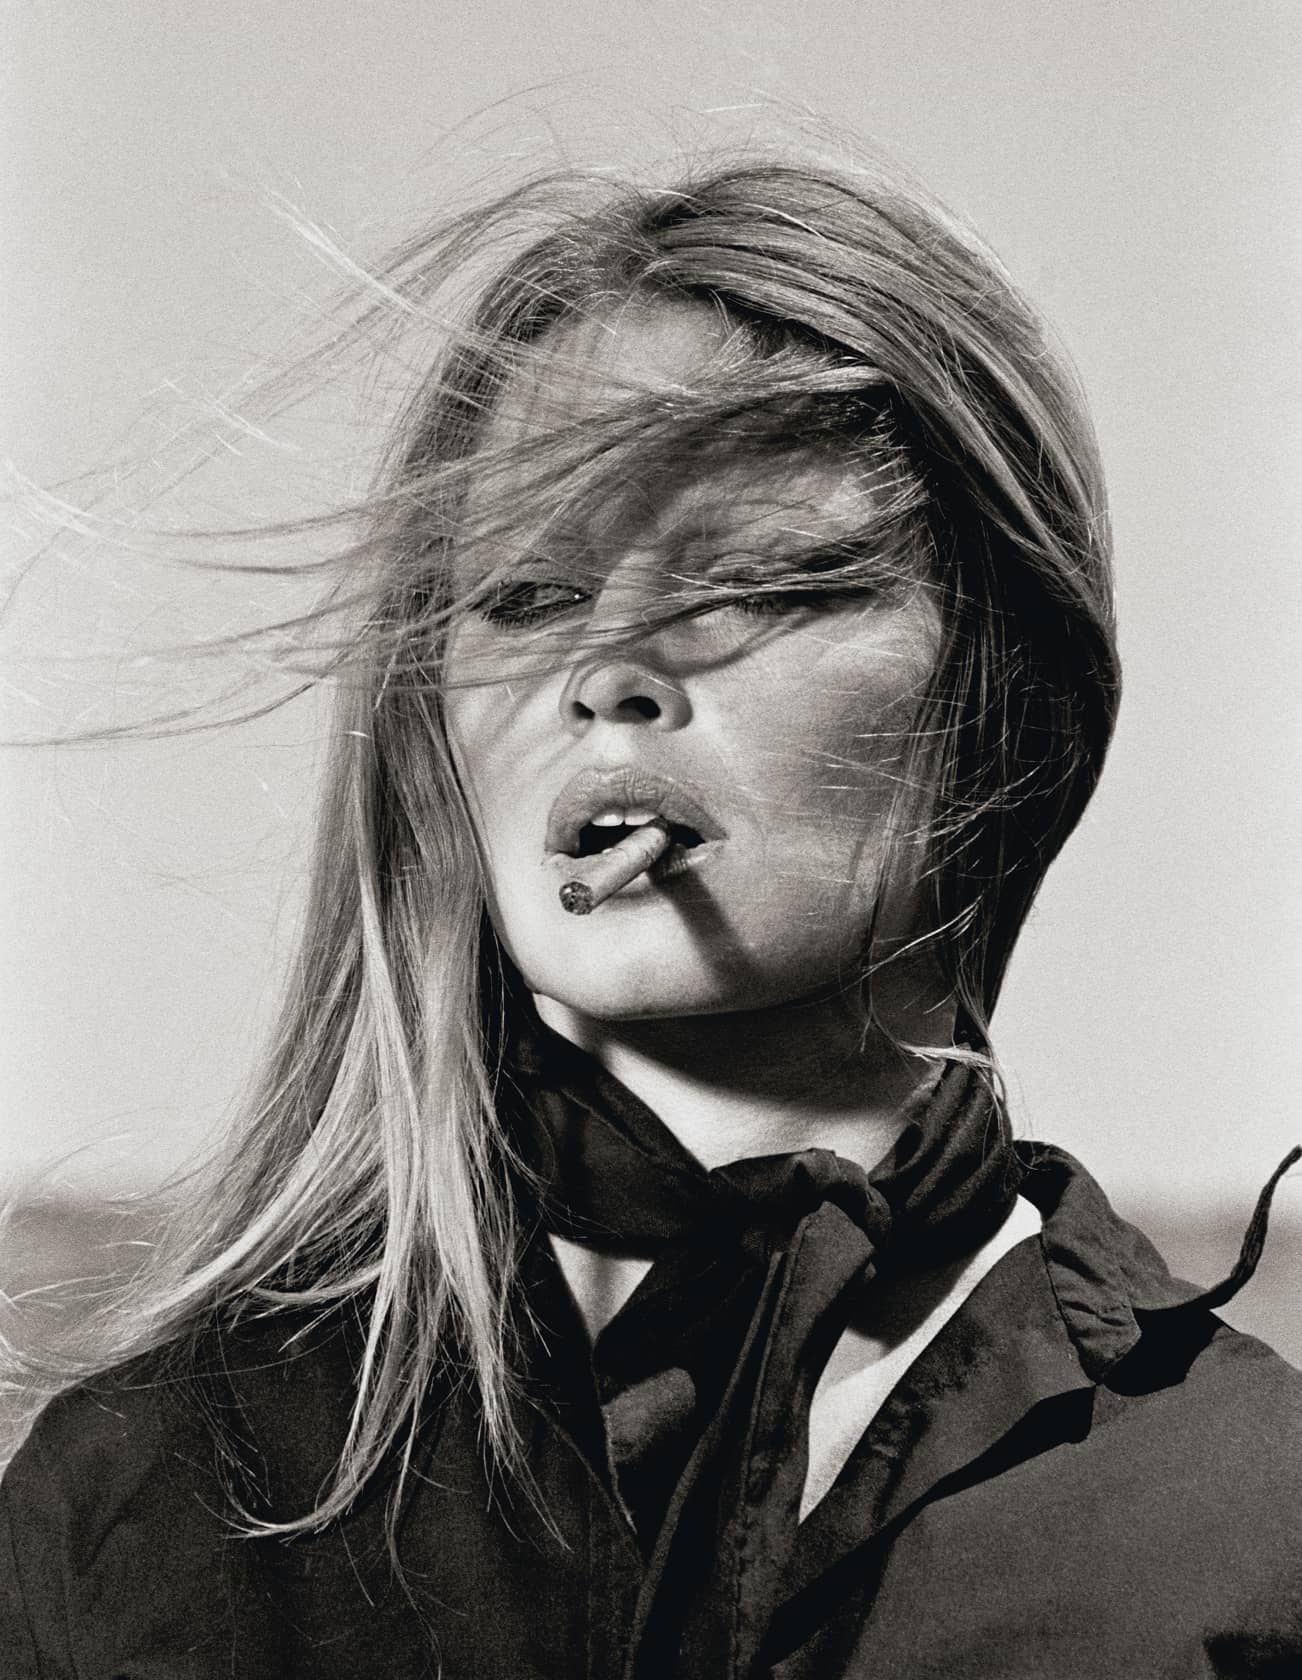 Terry O'Neill Brigitte Bardot, Spain Lifetime Gelatin Silver Print *available in other mediums & editions